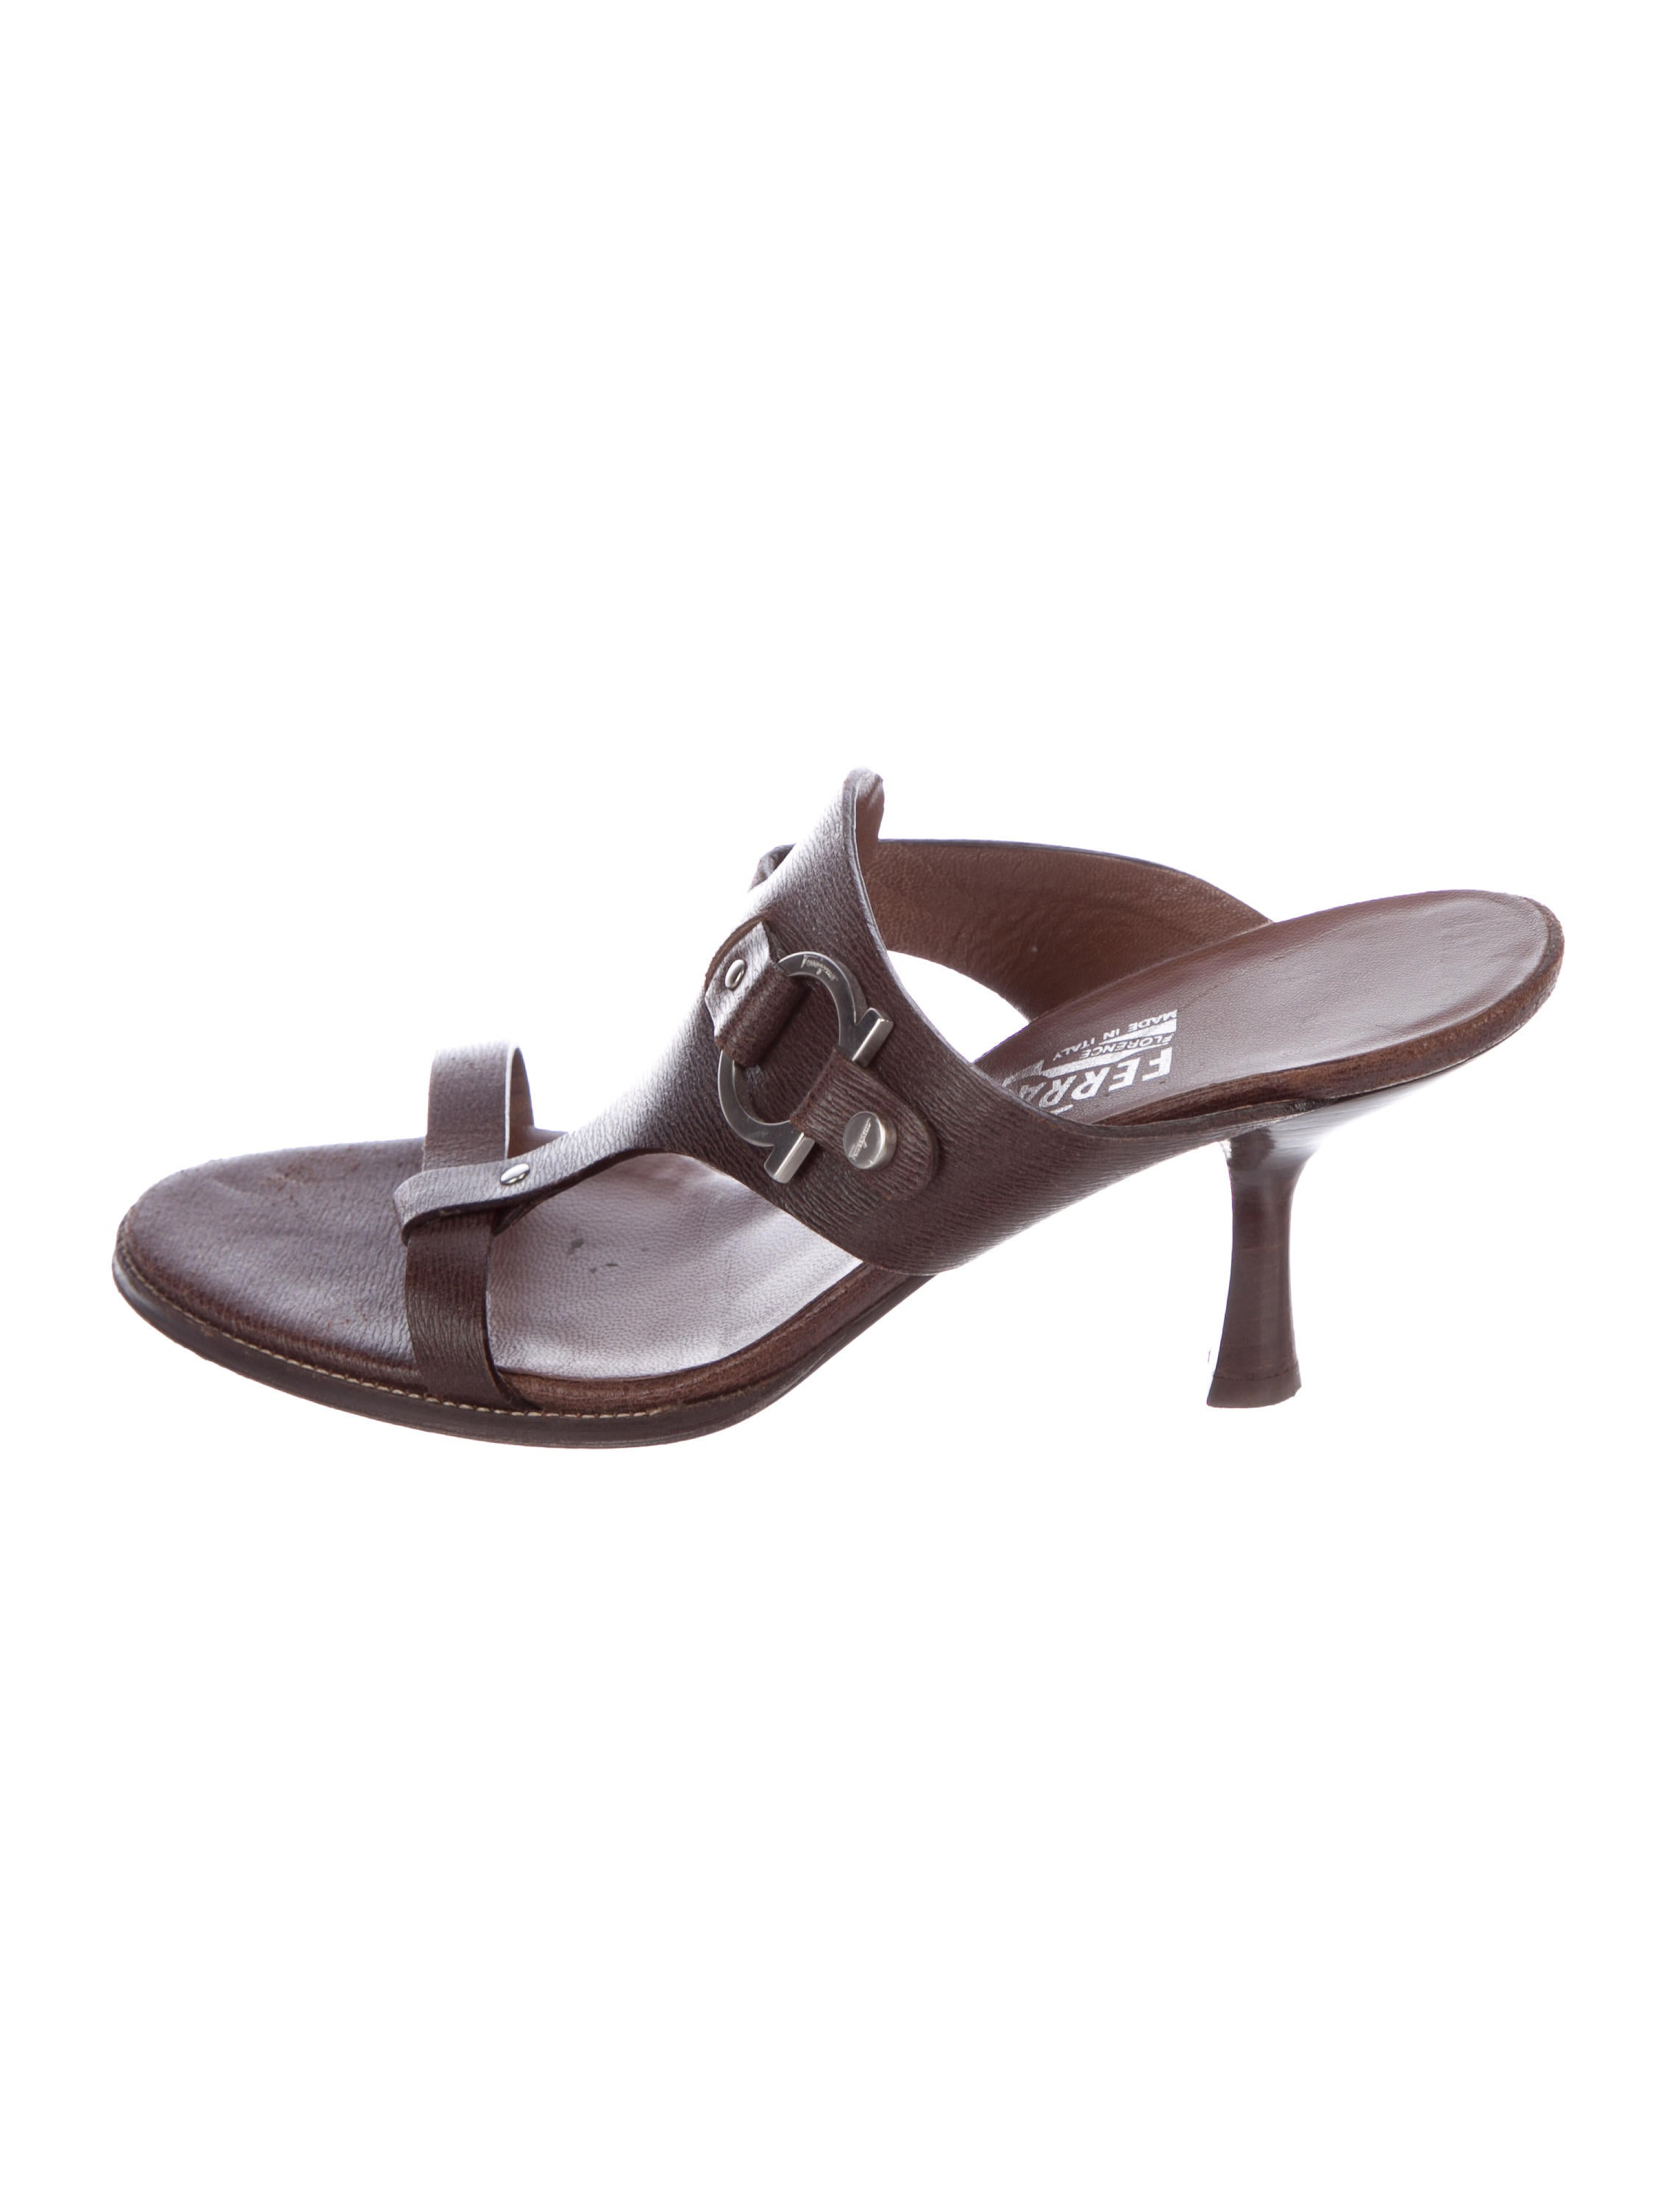 Salvatore Ferragamo Leather Gancino Sandals buy cheap sale cheap sale 100% authentic outlet locations cheap price IBCDr